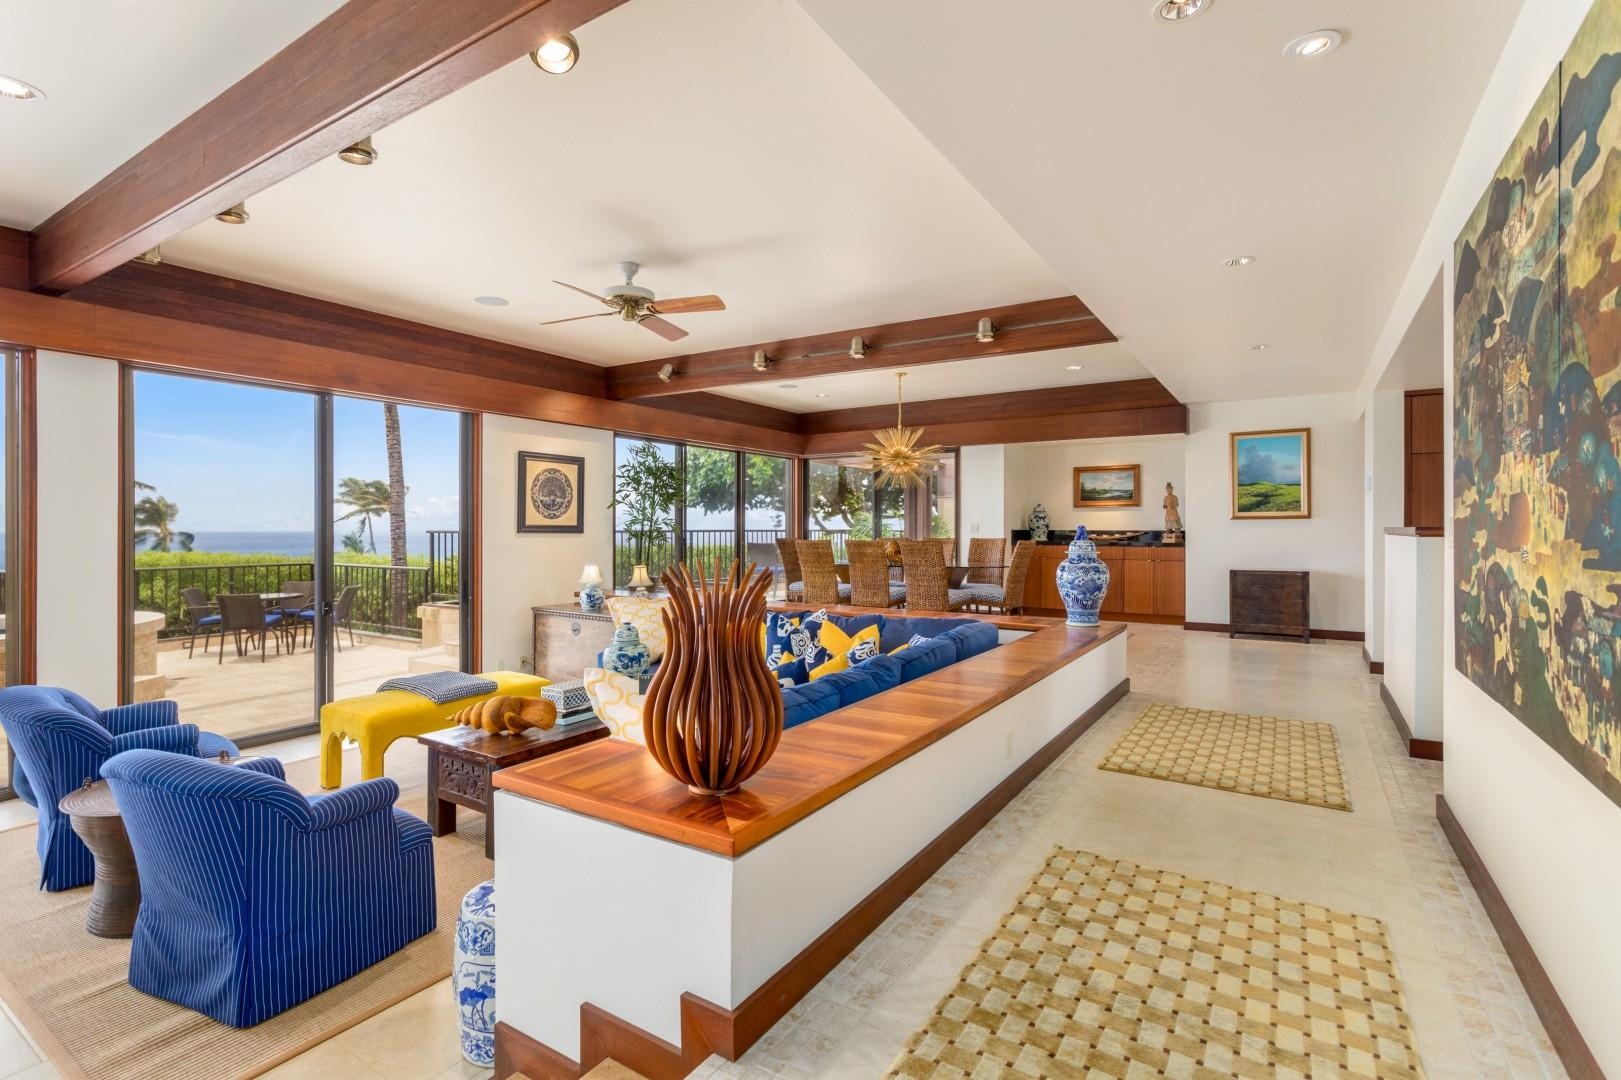 View of generous great room with recessed living area and ocean views.